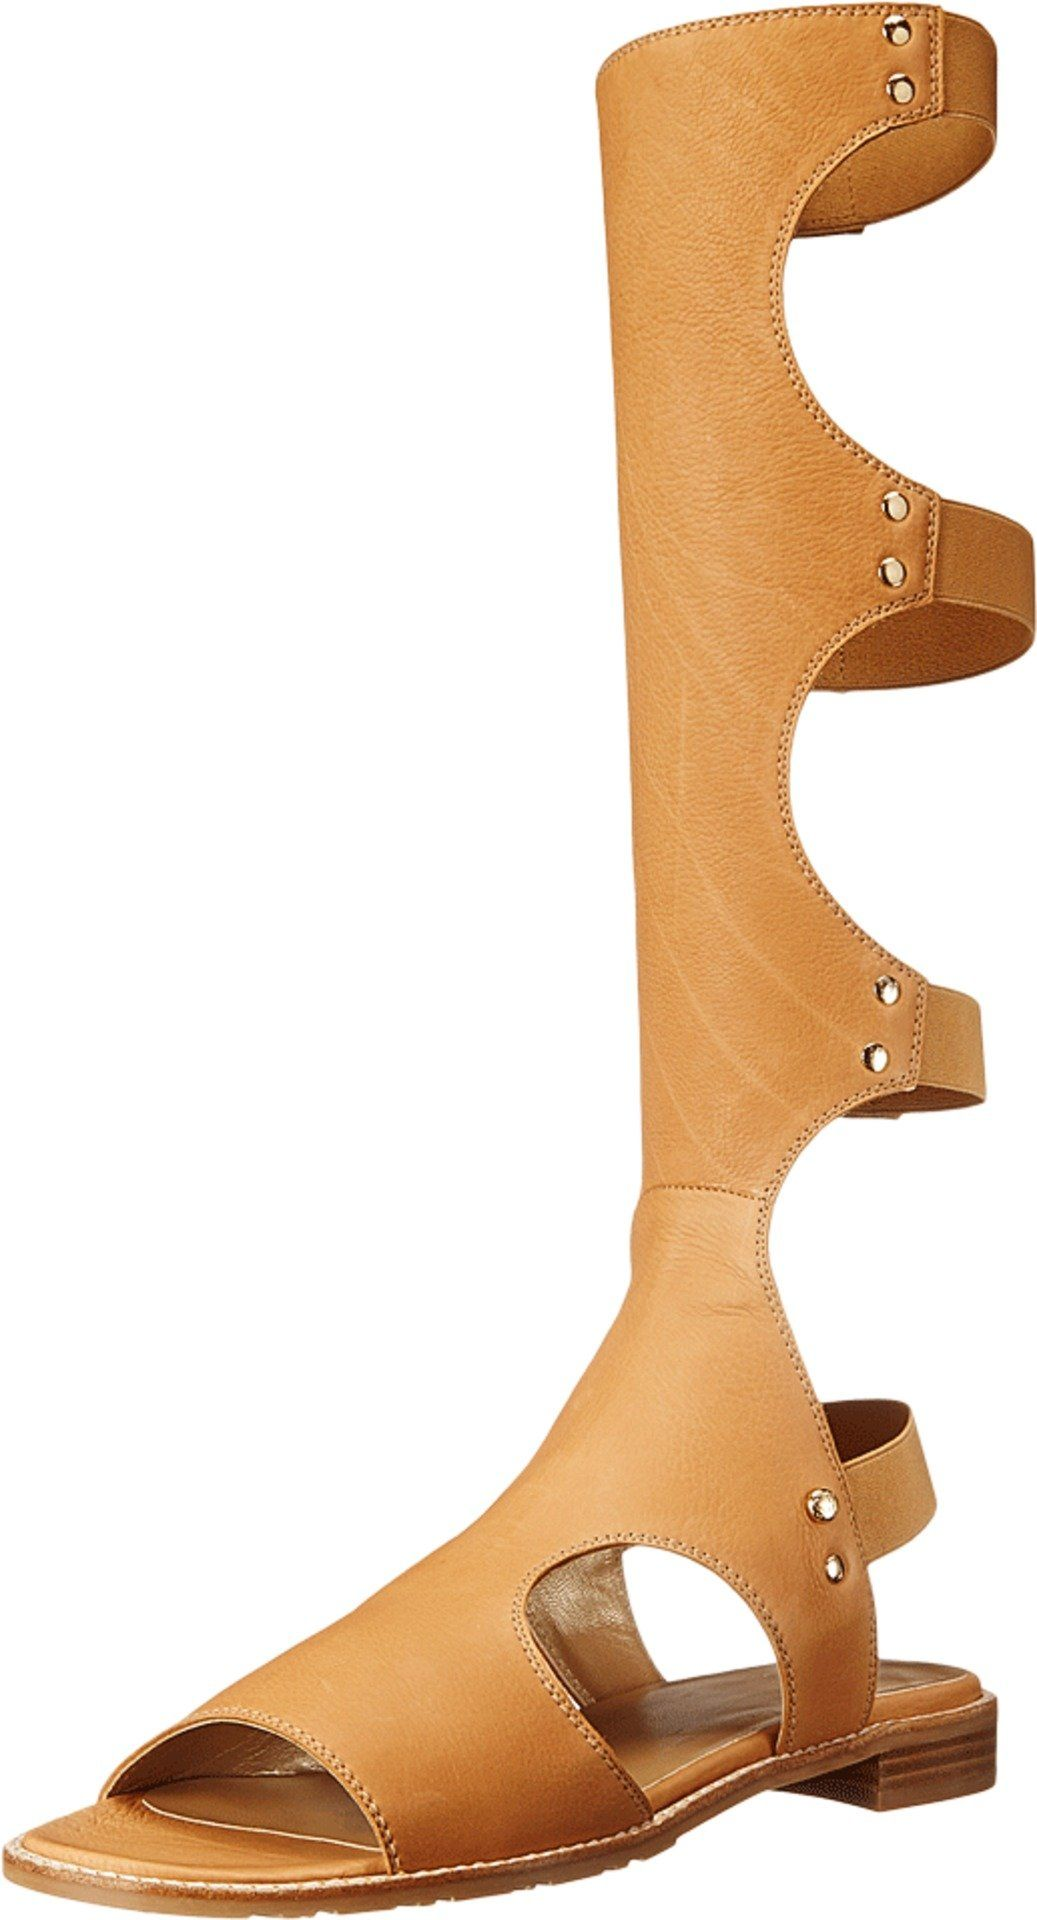 Stuart Weitzman Women's Backview Pecan Comfy Calf Sandal 4 M. Made in USA  or Imported.